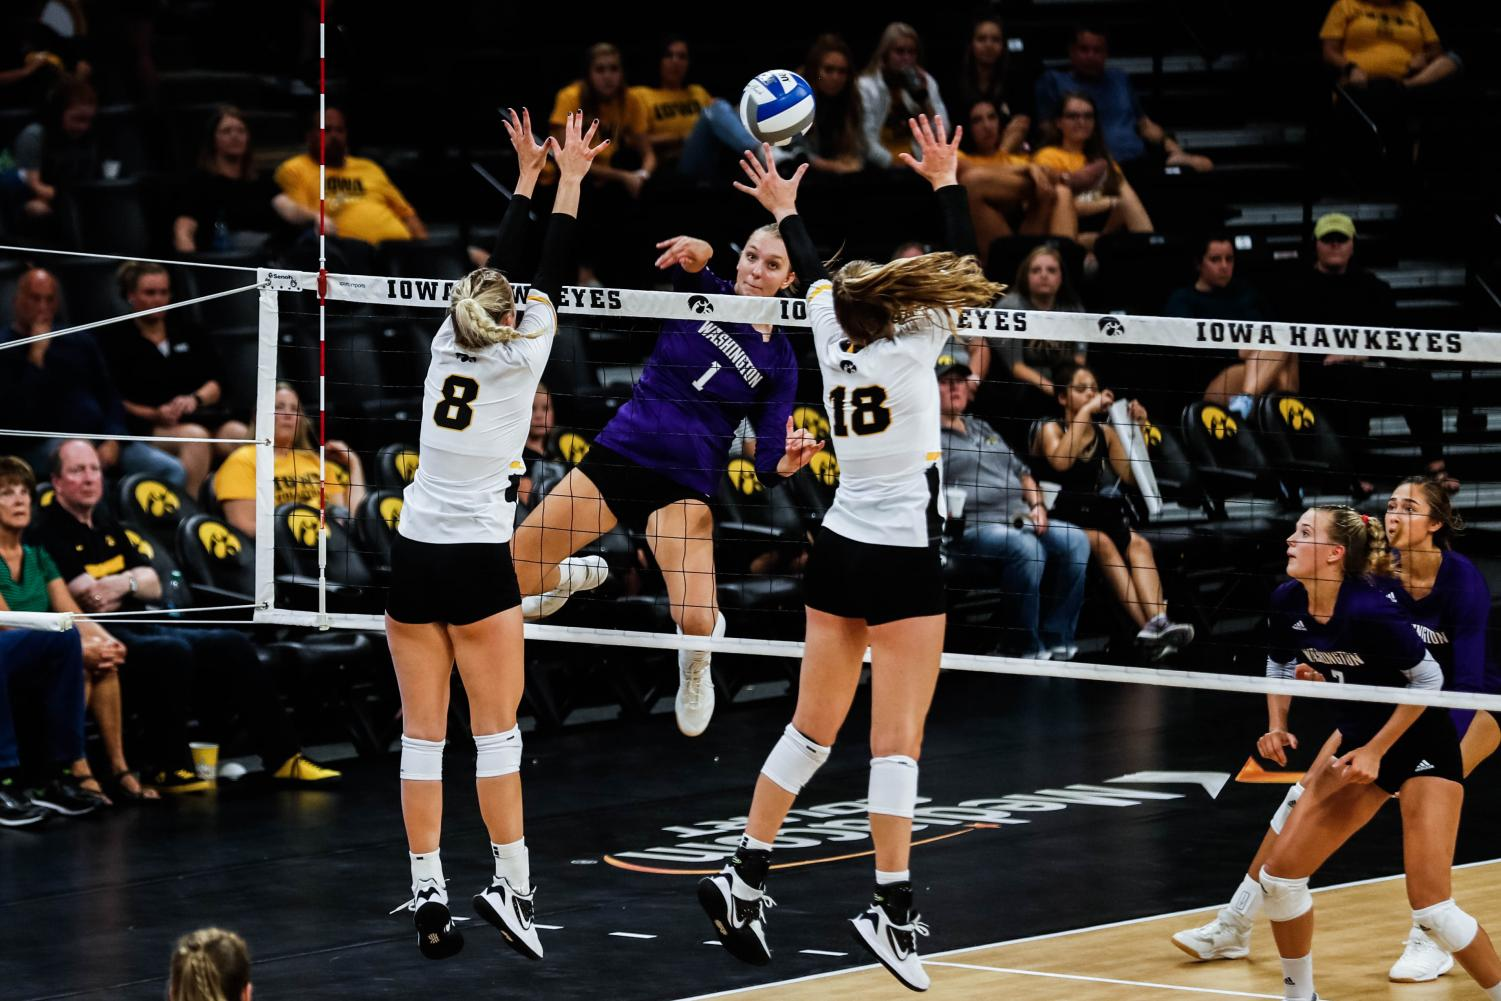 Washington+middle+blocker+Lauren+Sanders+goes+for+a+kill+during+a+volleyball+match+between+Iowa+and+Washington+at+Carver+Hawkeye+Arena+on+Saturday%2C+September+7%2C+2019.+The+Hawkeyes+were+defeated+by+the+Huskies%2C+3-1.